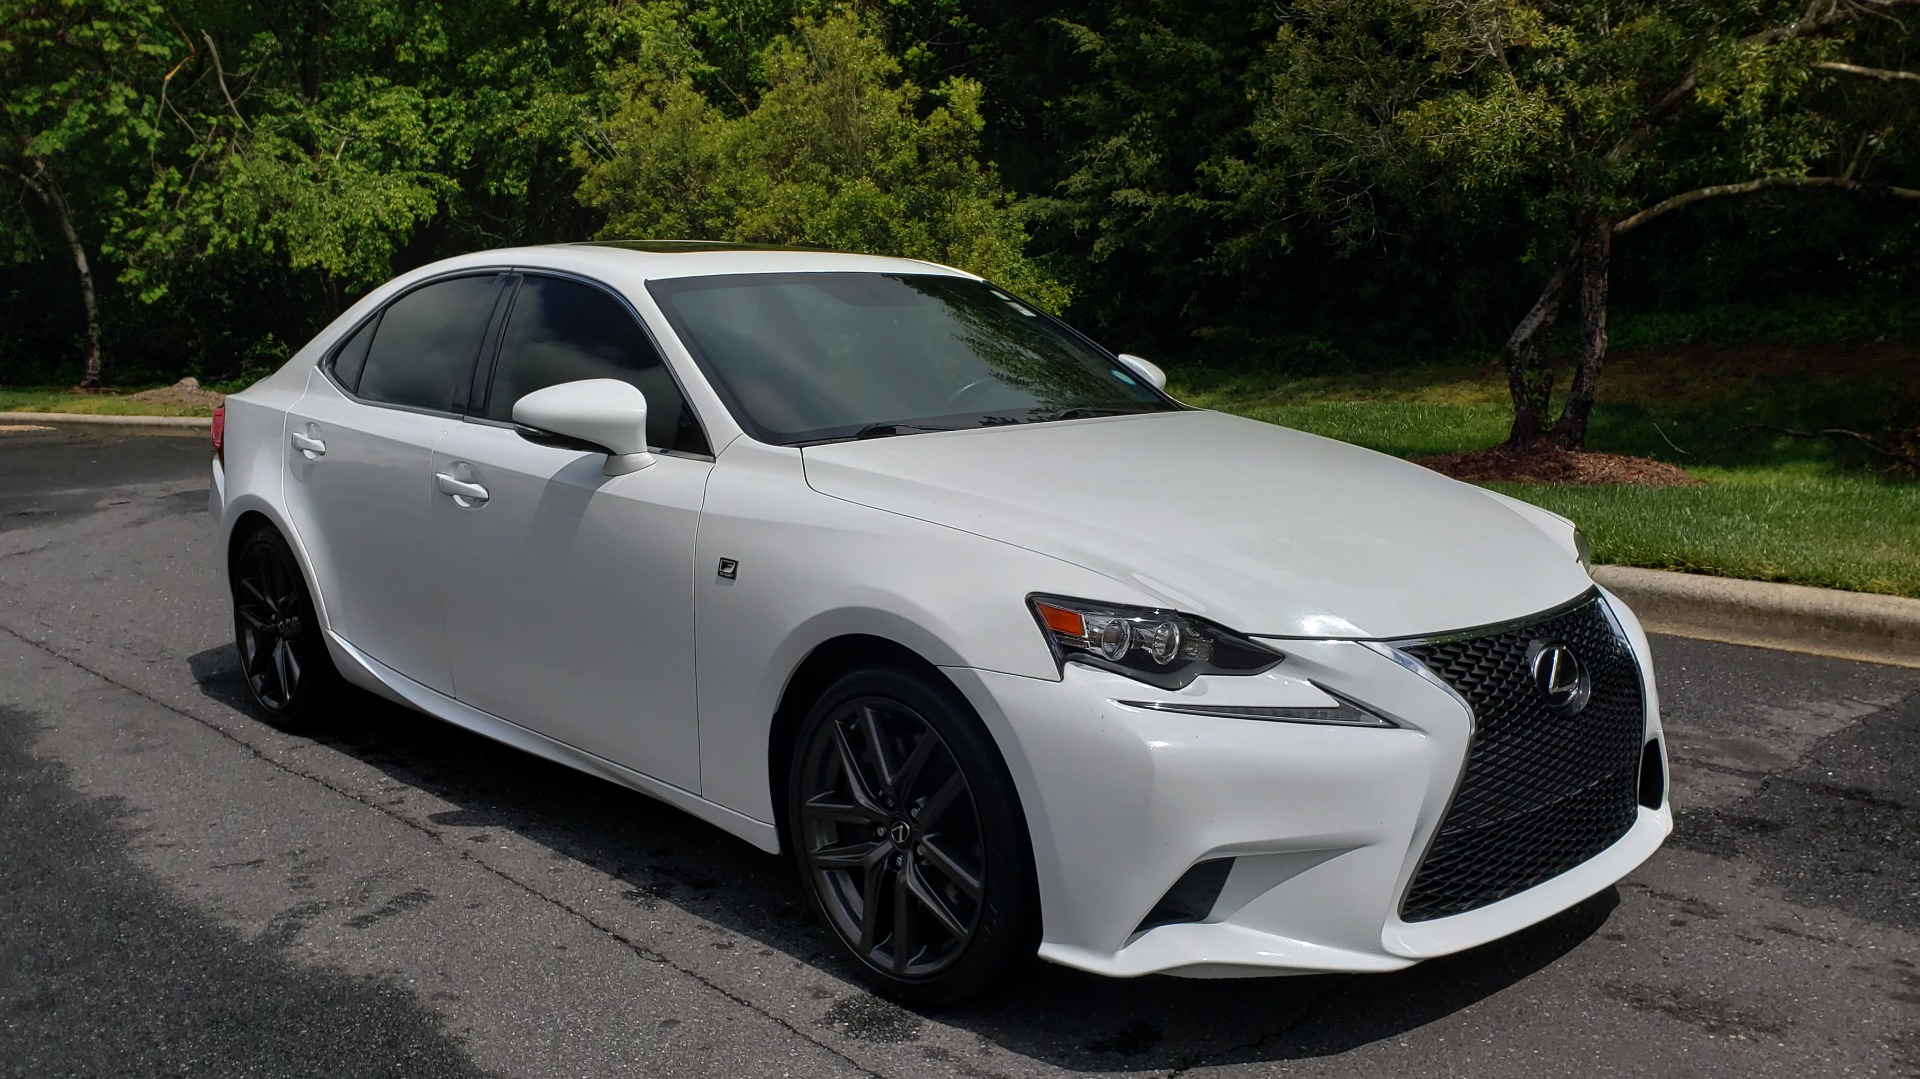 Used 2014 Lexus IS 350 F-SPORT / NAV / SUNROOF / REARVIEW / BSM / MARK LEV SND for sale Sold at Formula Imports in Charlotte NC 28227 4